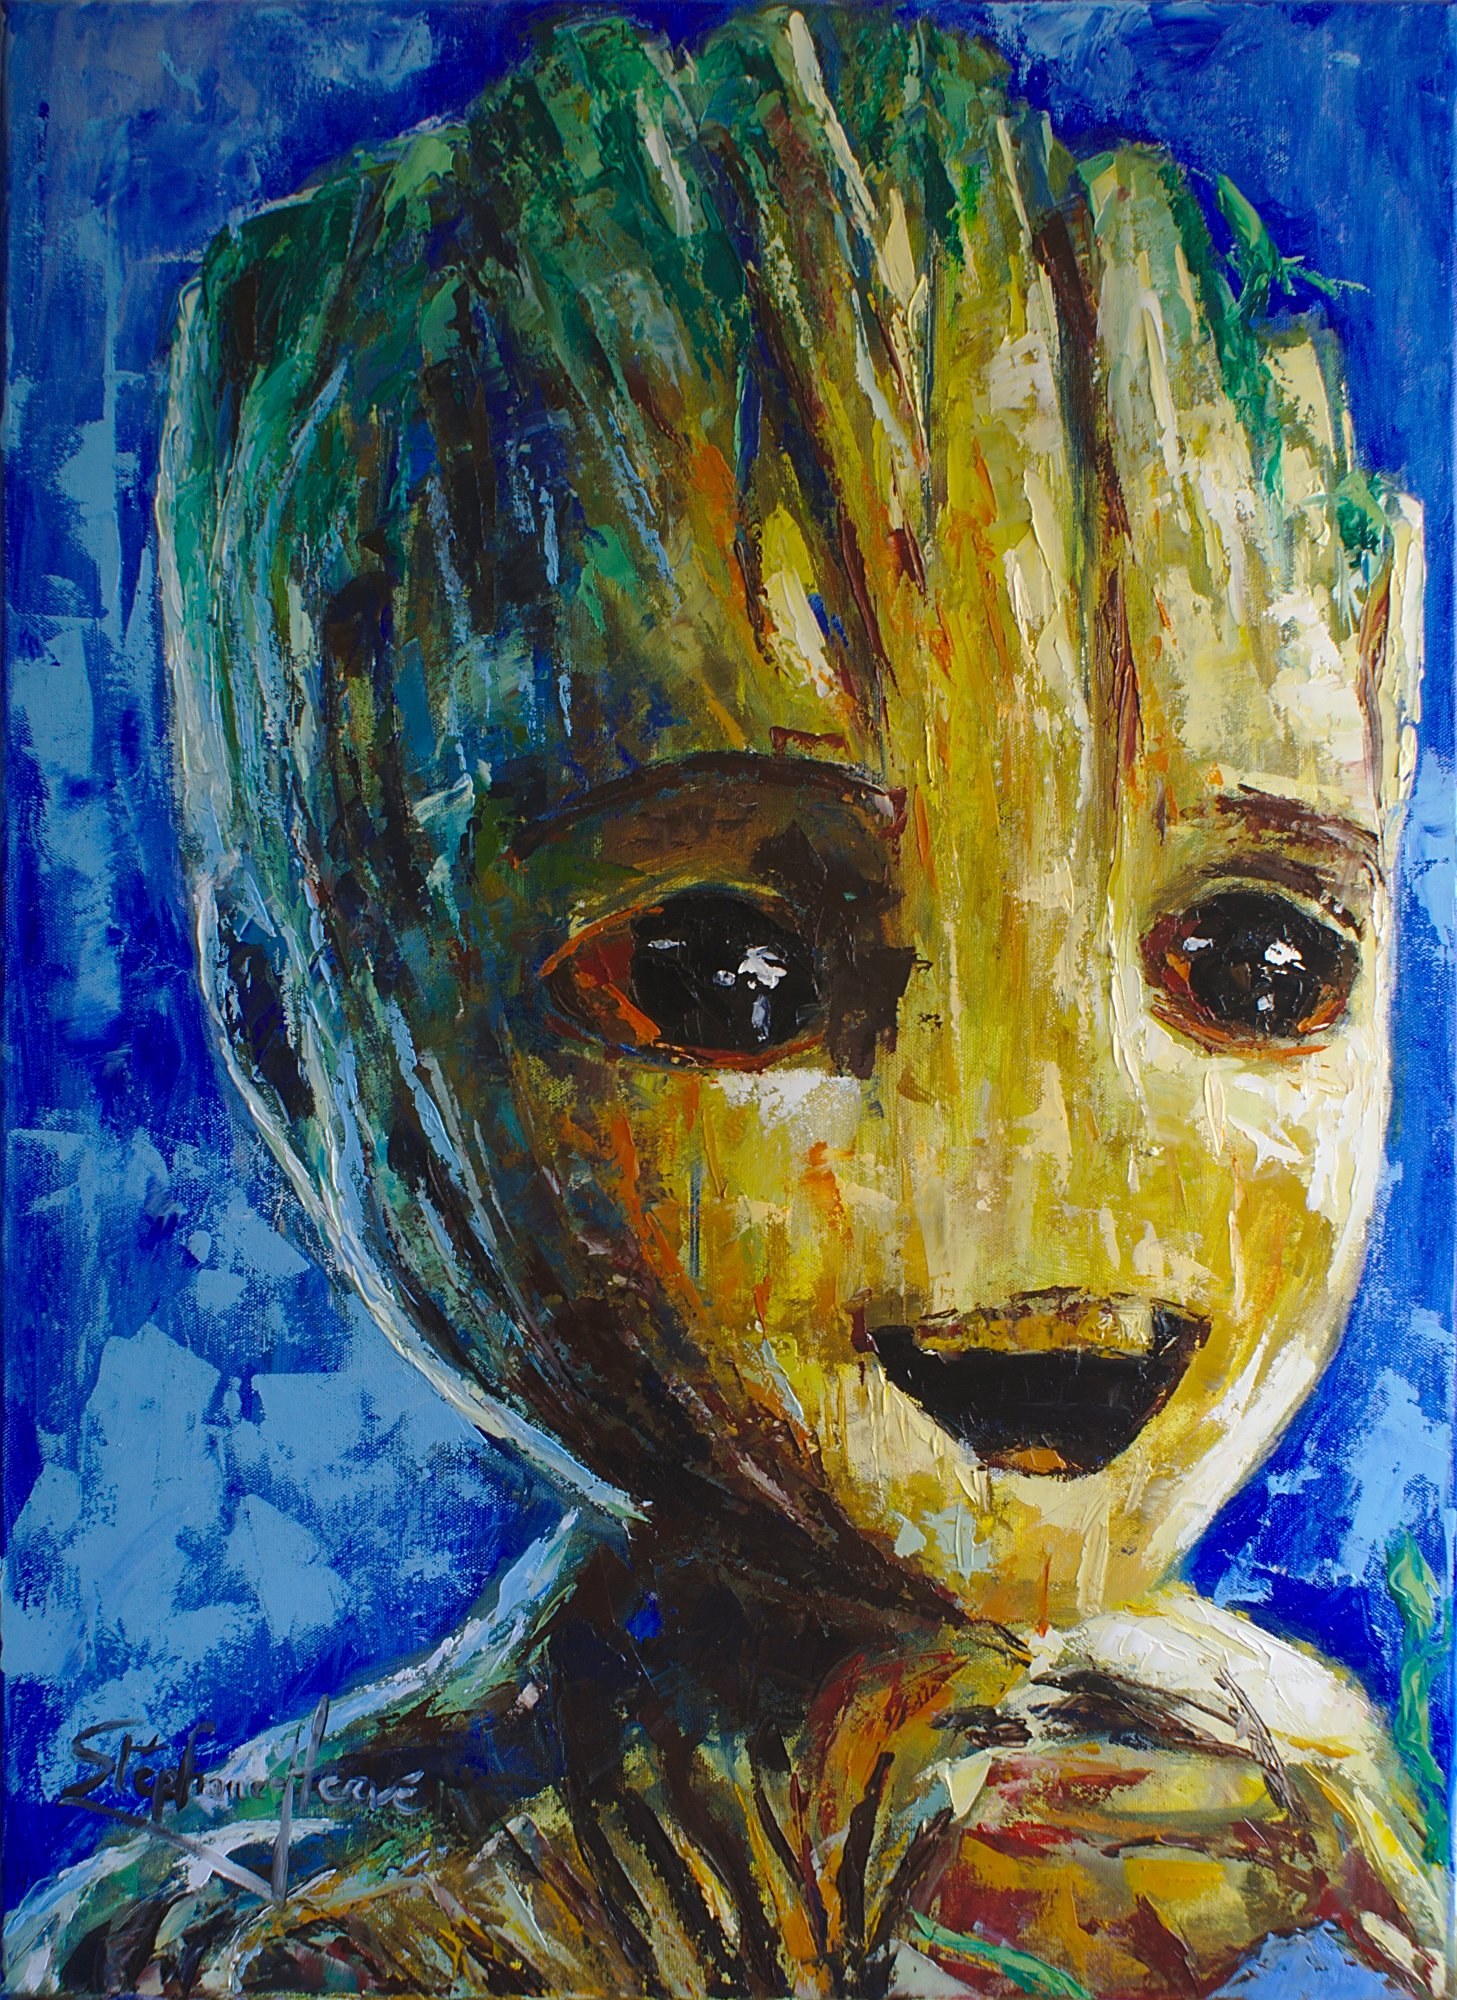 Image de Bébé Groot (Guardians of the Galaxy)